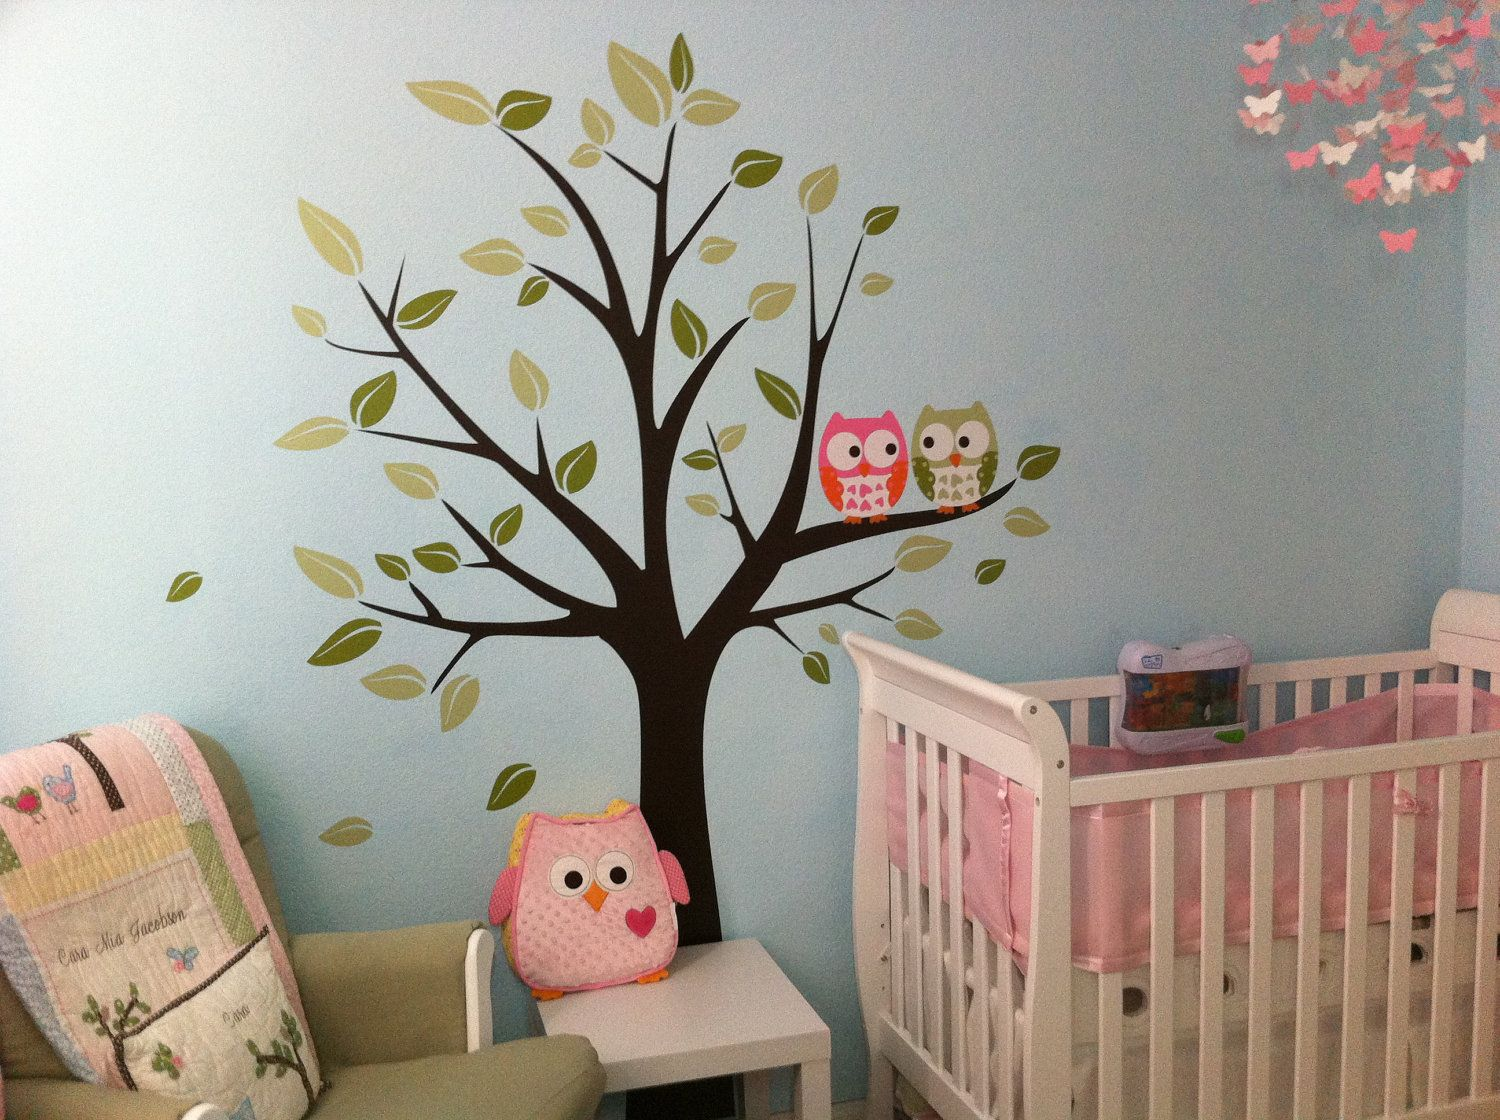 Wall Decal Owls On A Tree Baby Nursery Decals 88 00 Via Etsy